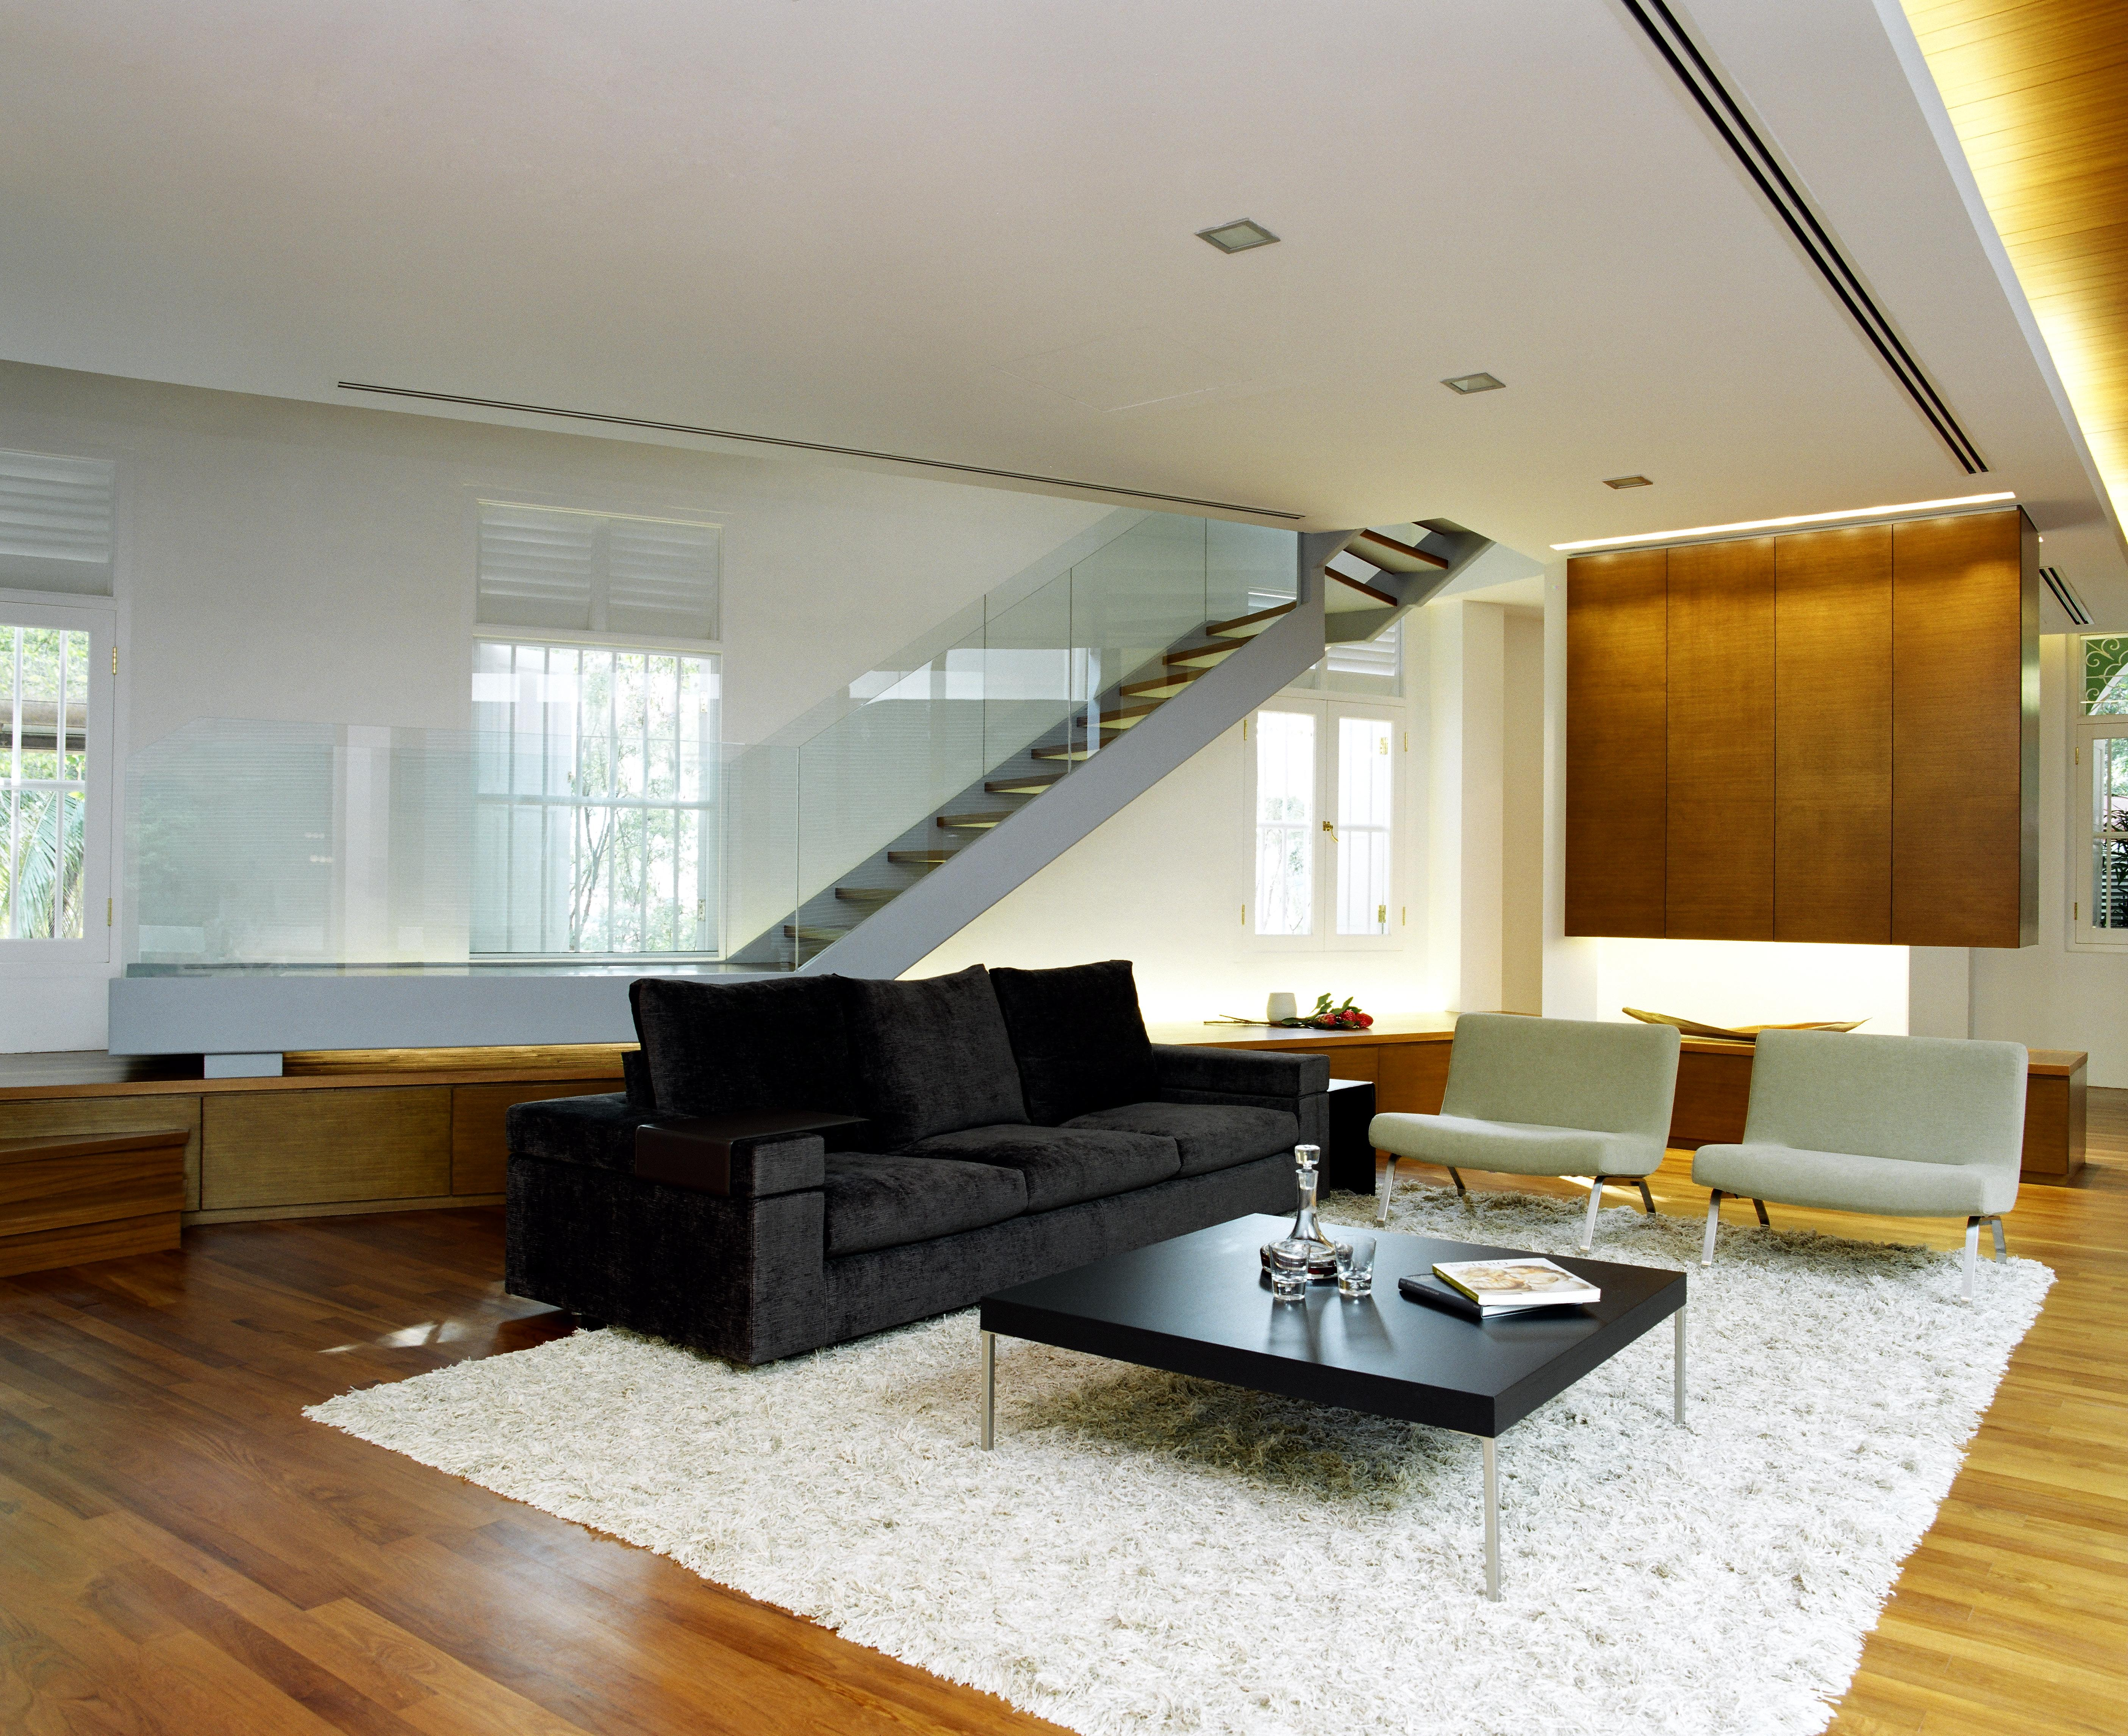 The living room is surrounded by a raised wood platform concealing storage, and acting as a landing for the metal and glass staircase with floating natural wood steps.